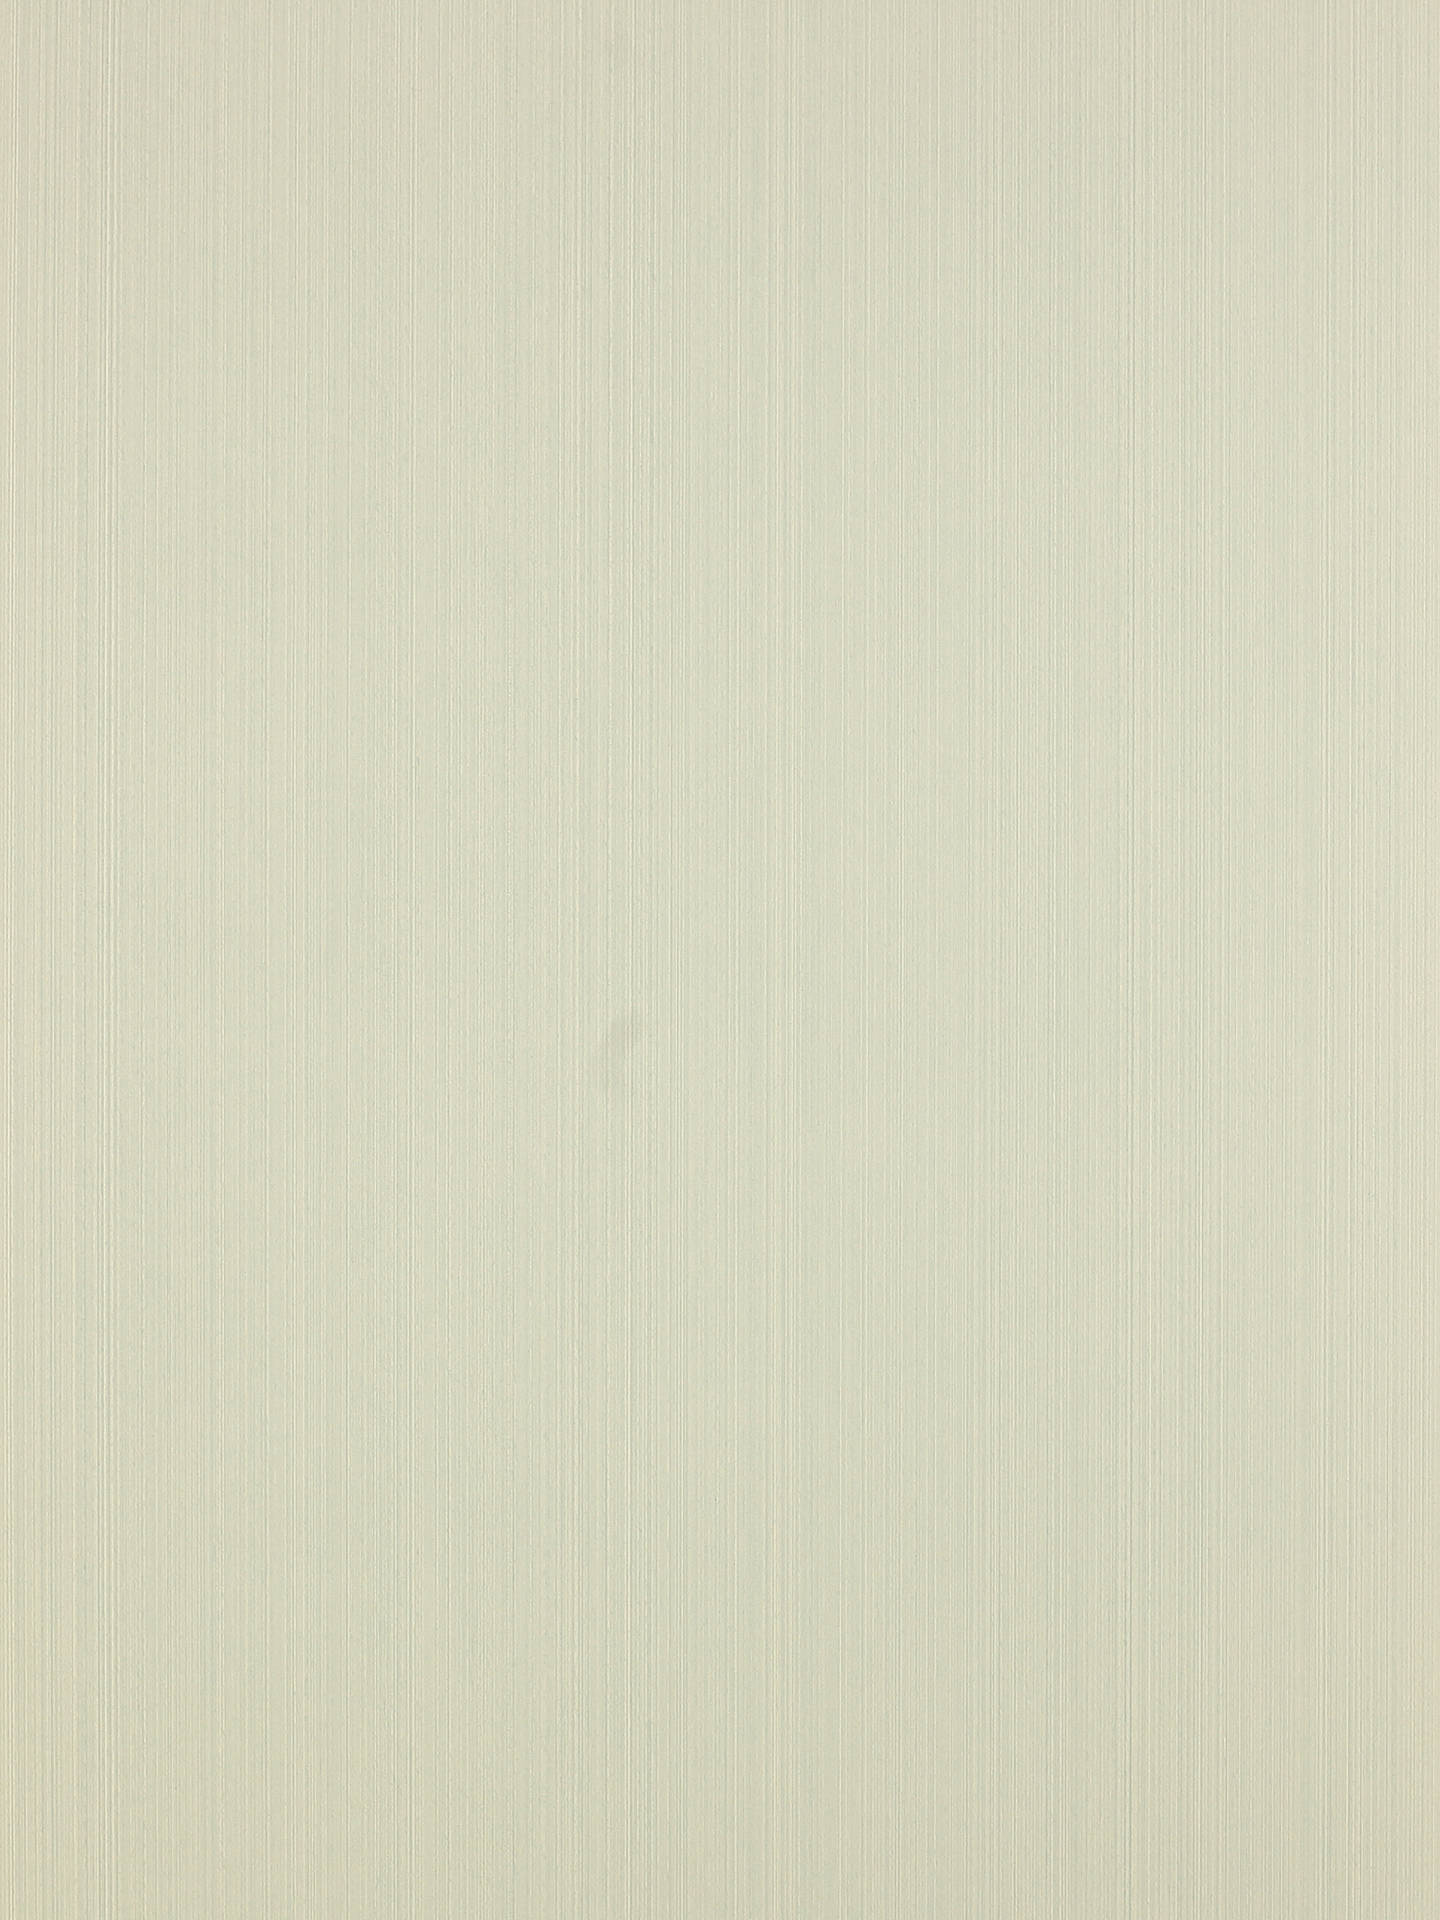 Buy Colefax and Fowler Harwood Wallpaper, Aqua 07906/18 Online at johnlewis.com